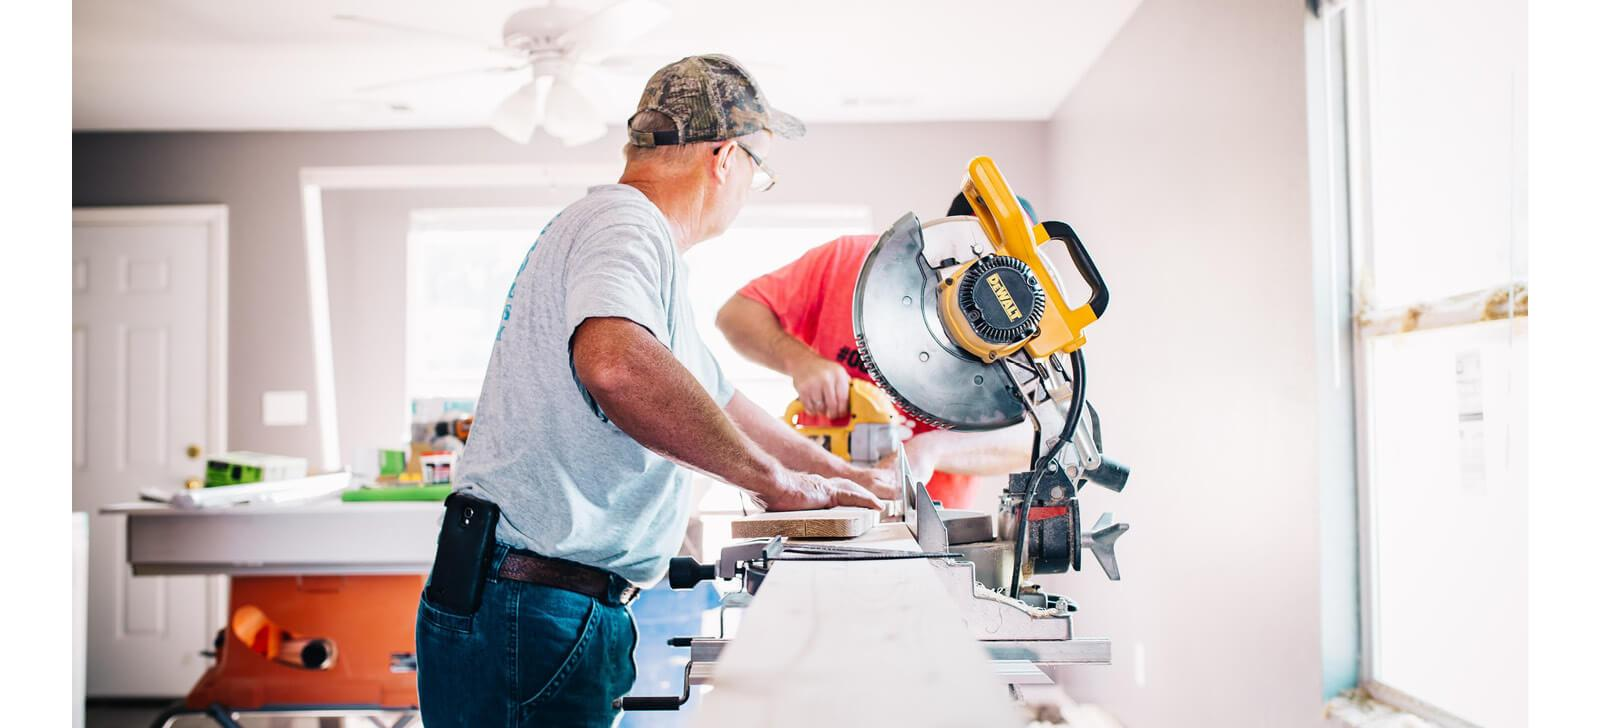 Two men cutting wooden planks using a table saw